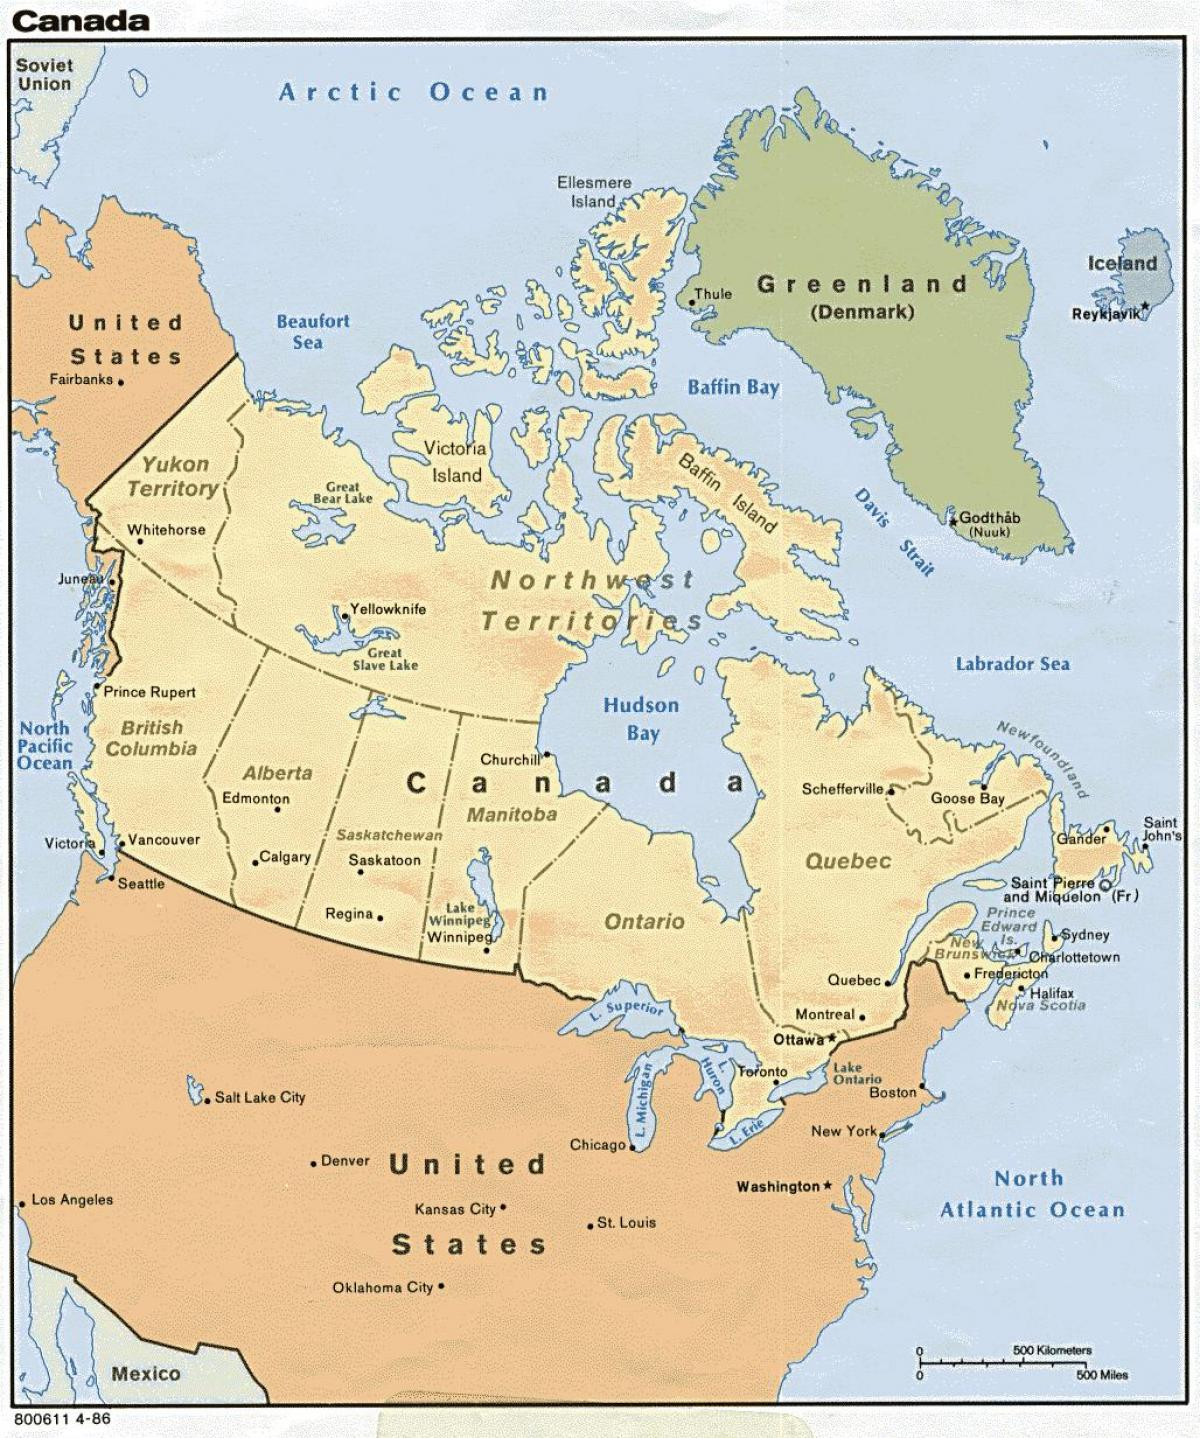 official map of Canada